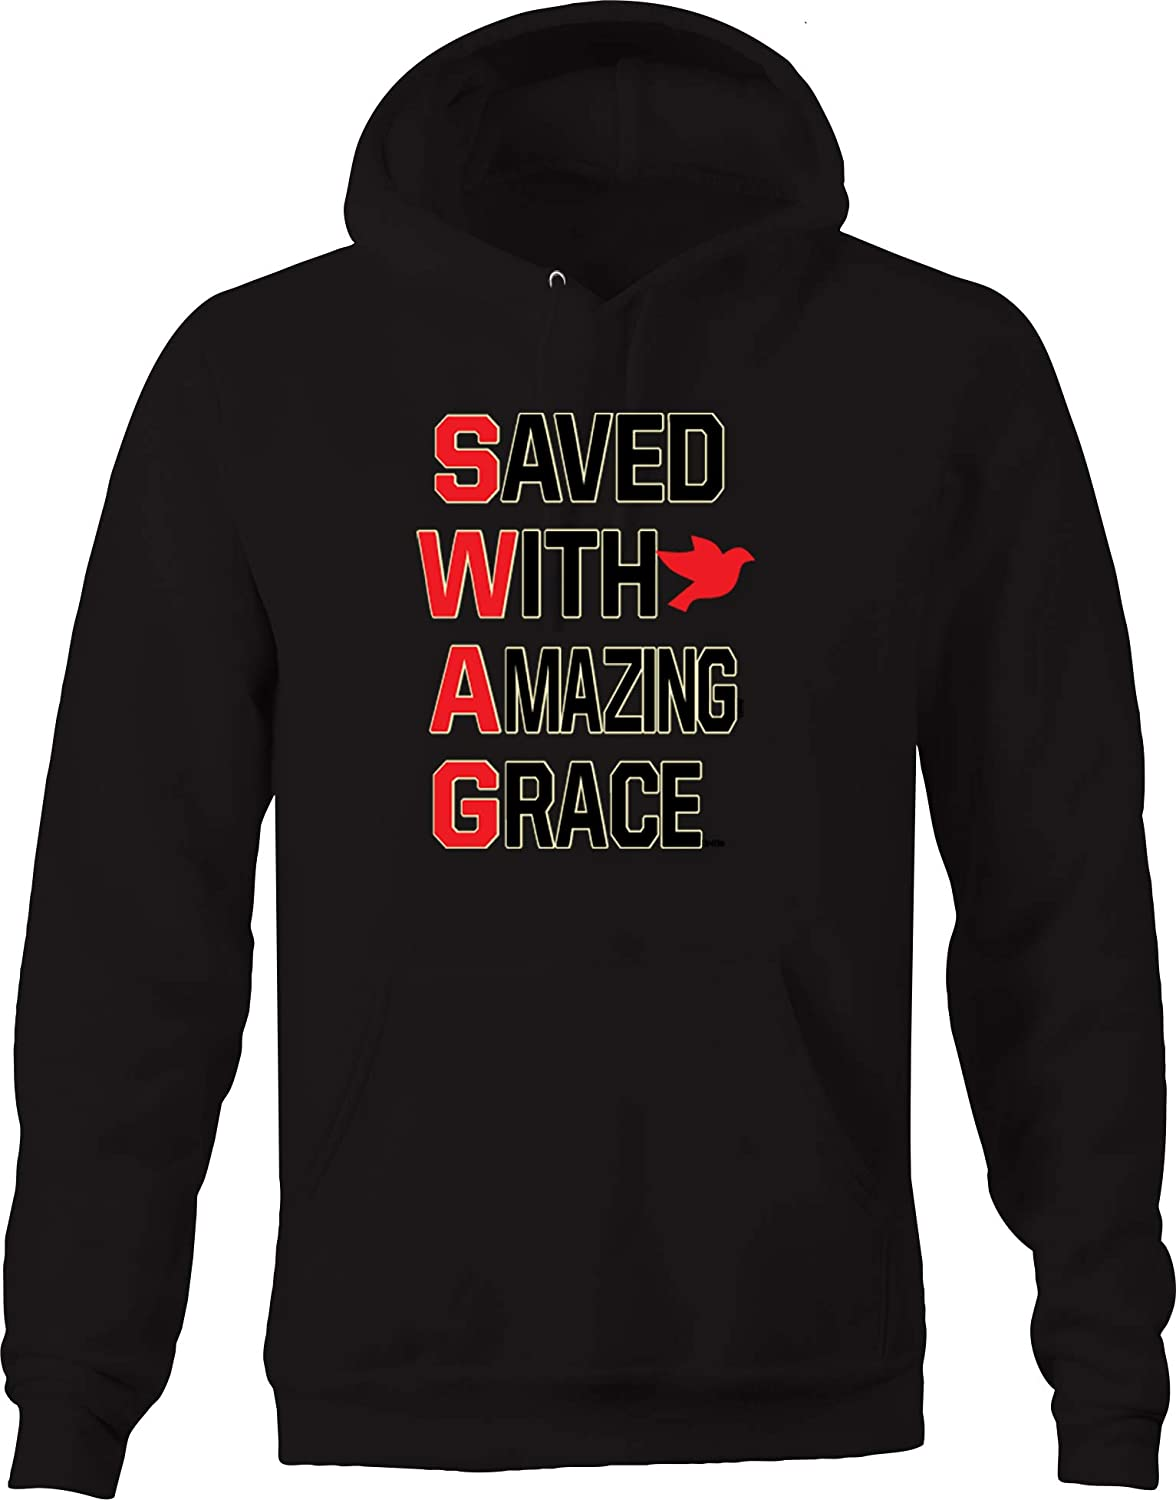 Swag Saved with Amazing Grace Culture Dove Hope Faith Cool Hot Hoodies for Men